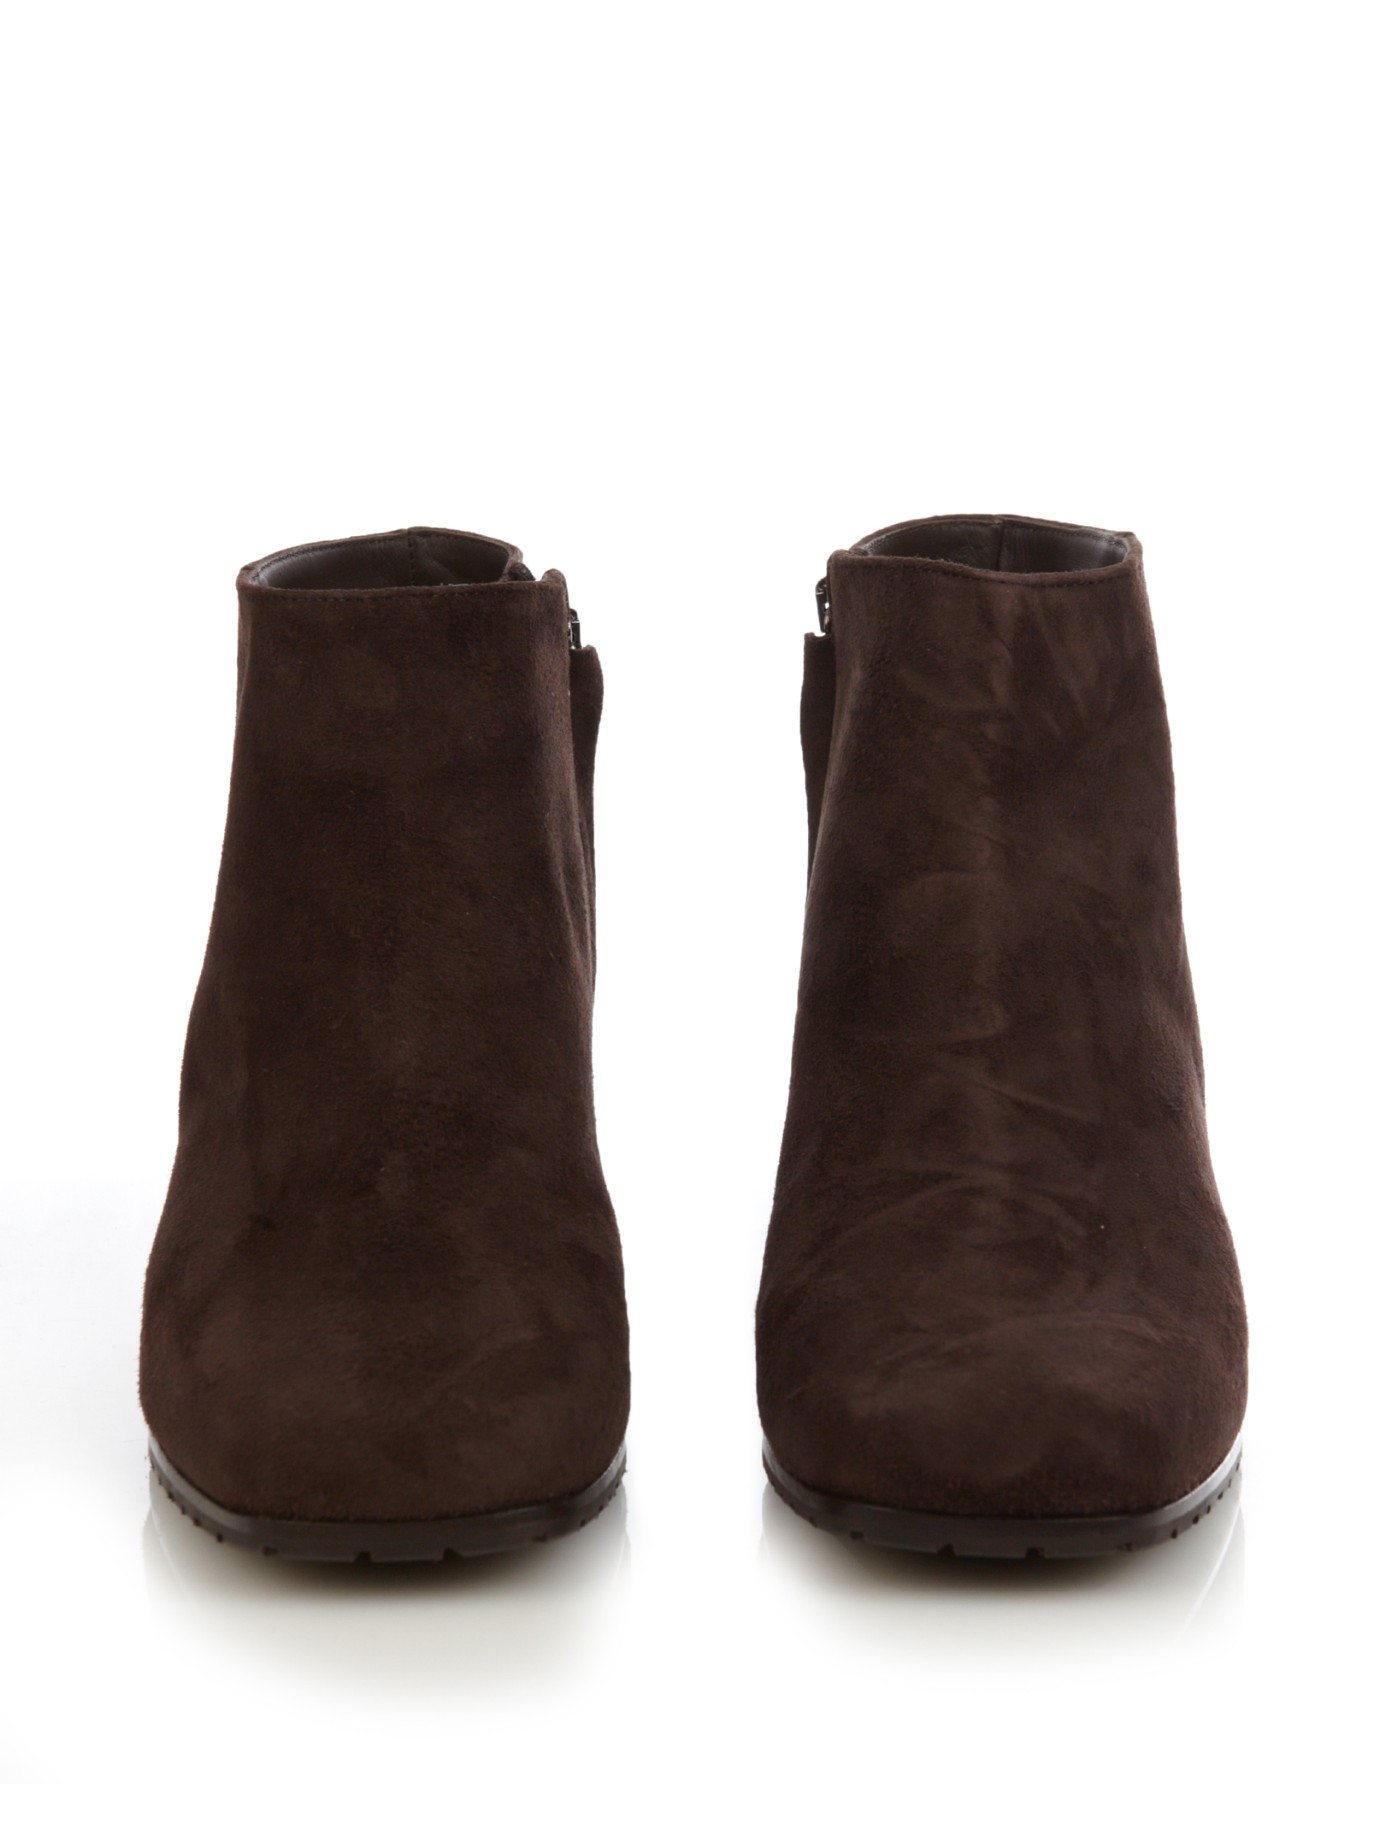 Max mara Struzzo Suede Ankle Boots in Brown | Lyst